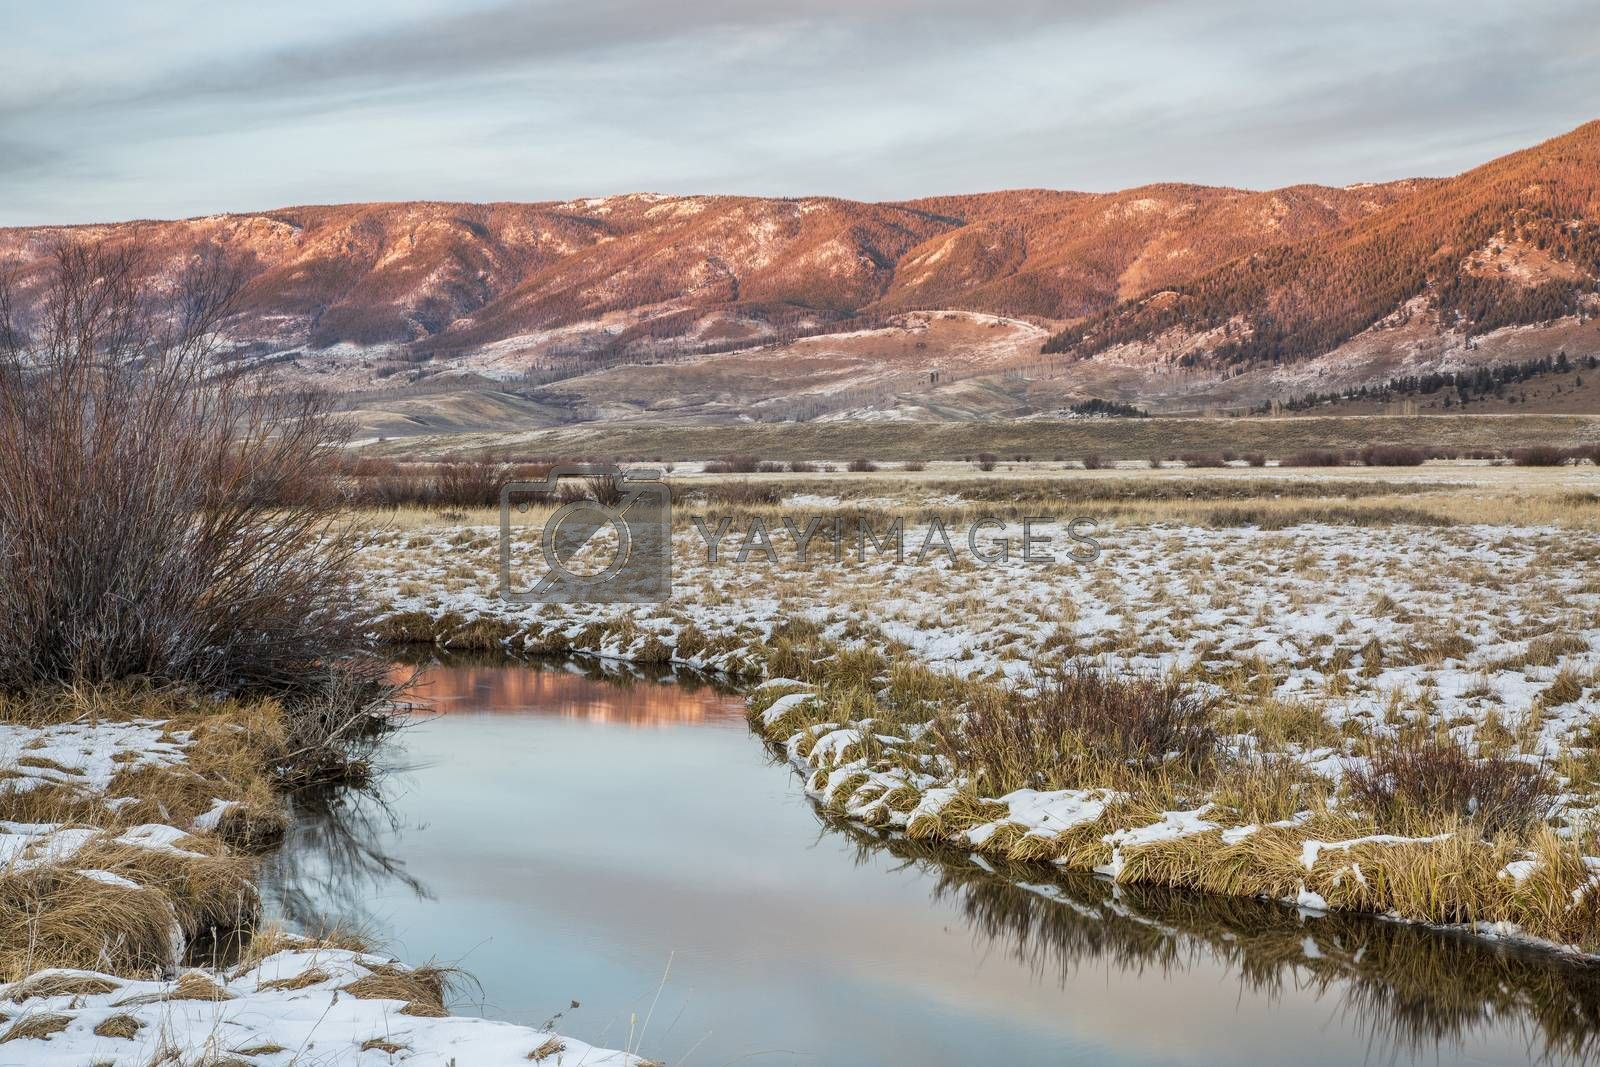 river and montains at dusk by PixelsAway